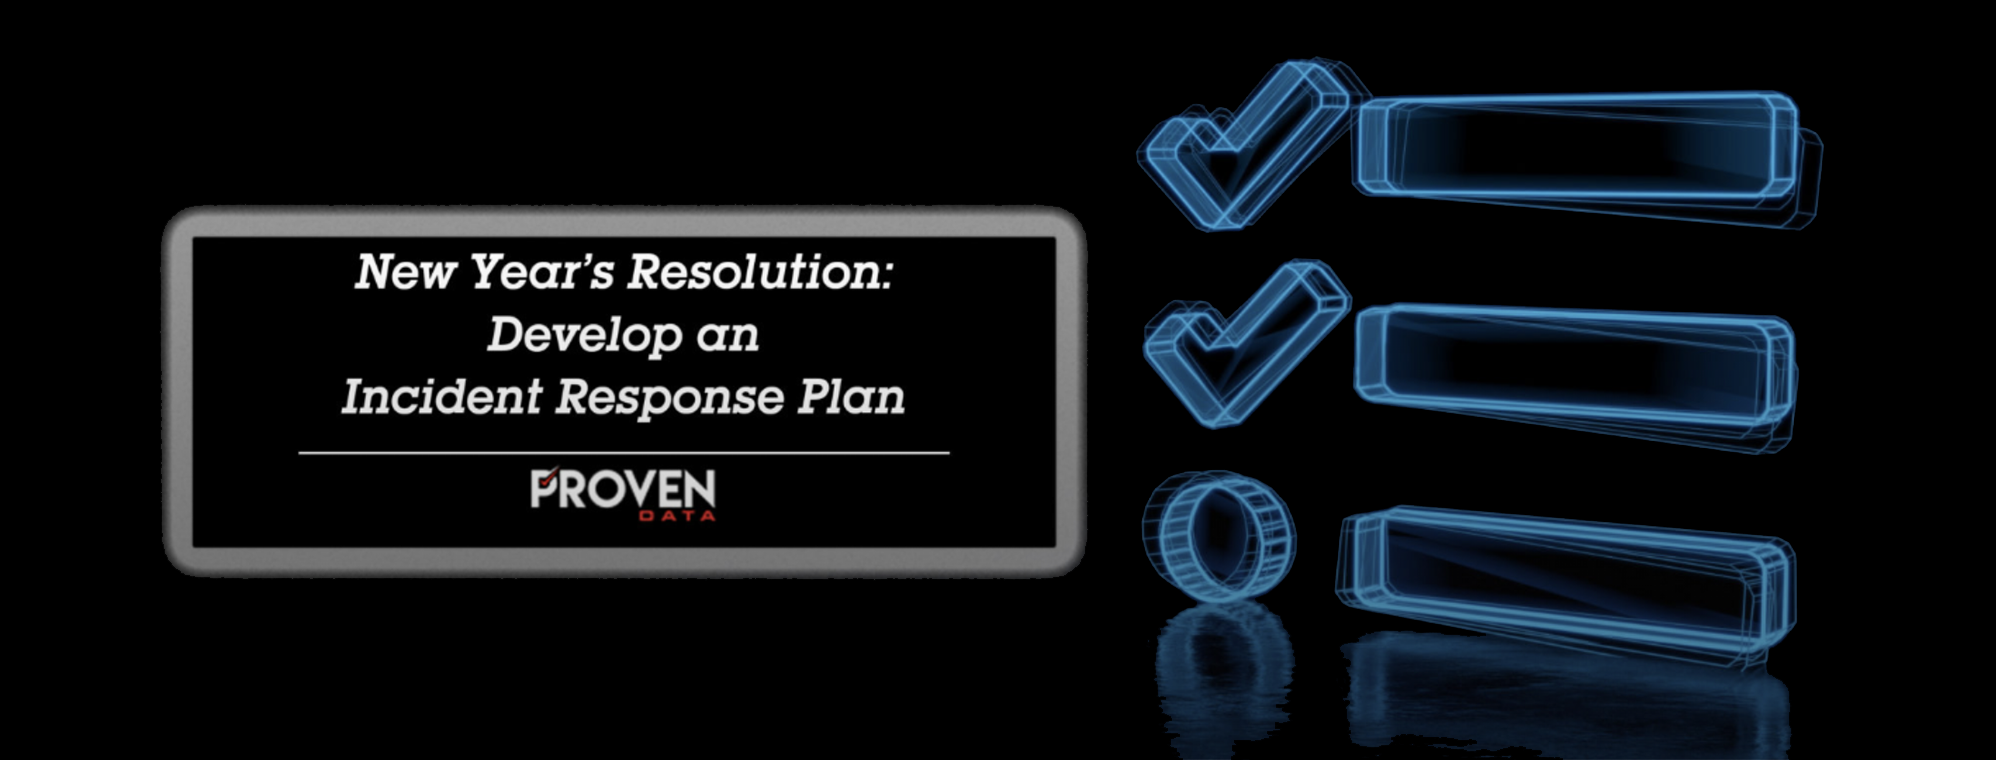 New Year's Resolution: Develop an Incident Response Plan